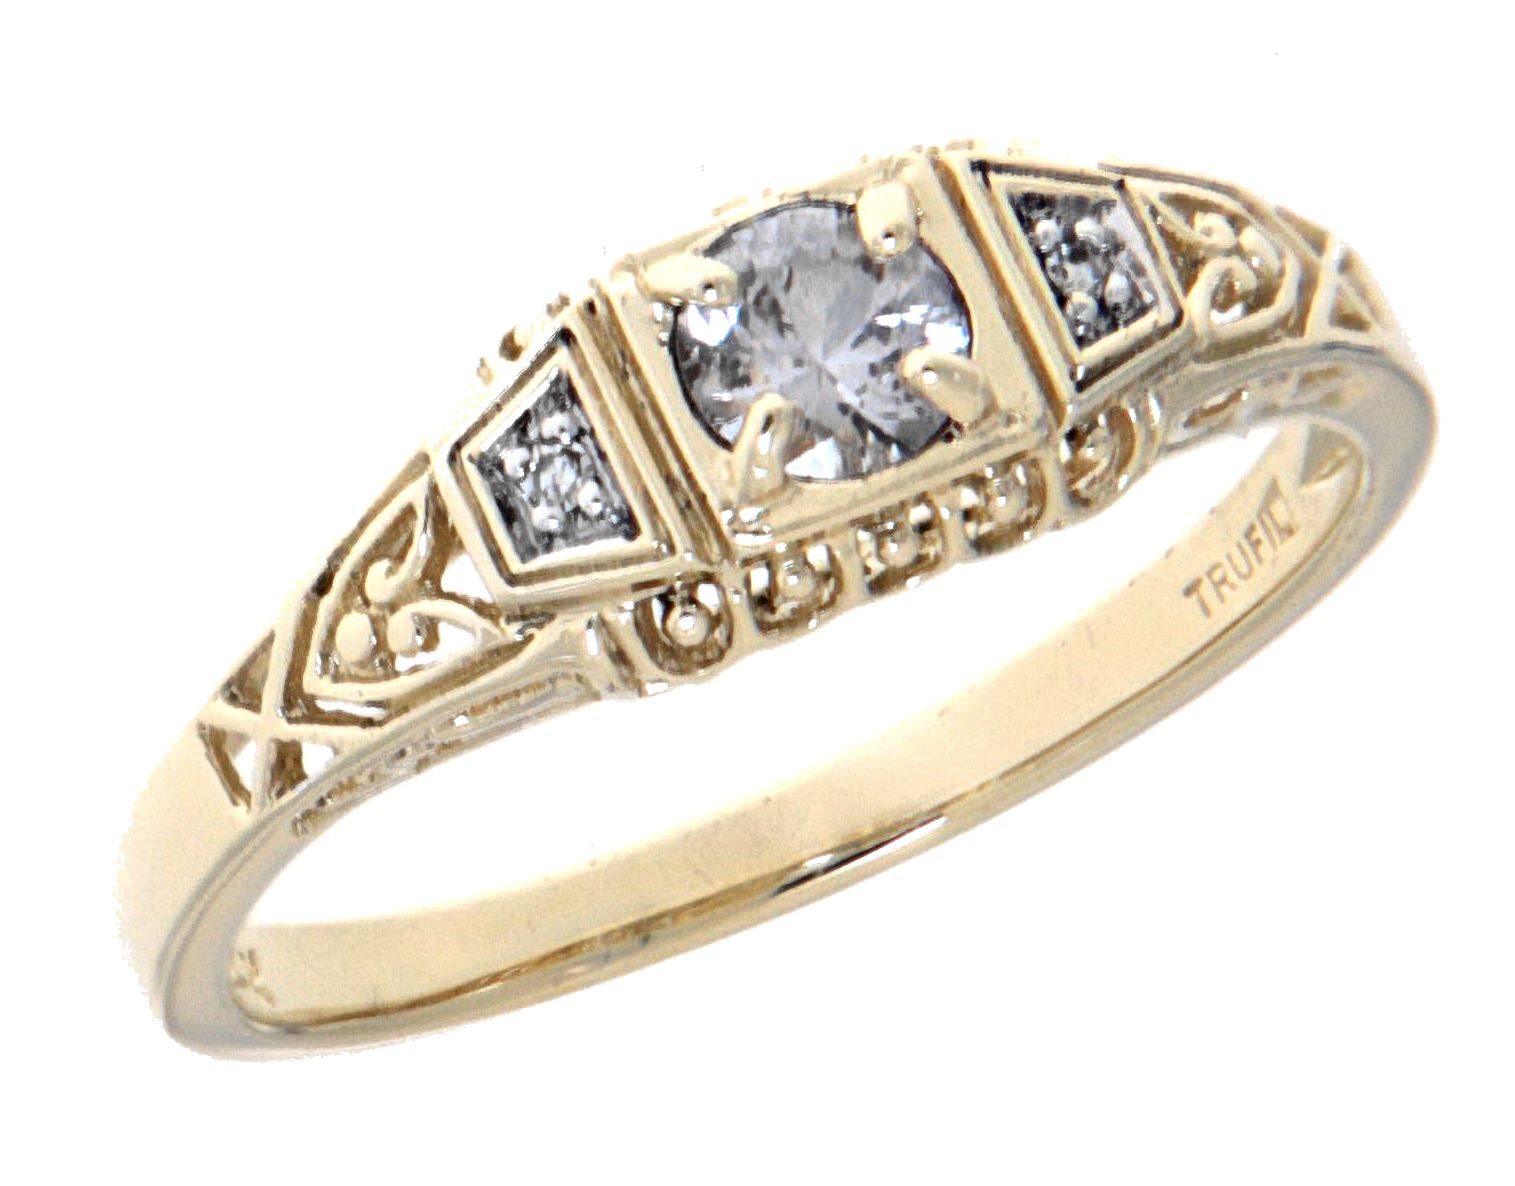 Art Deco Style Jewelry Boxes White Sapphire Art Deco Style 14kt Yellow Gold Filigree Ring W 2 Diamonds